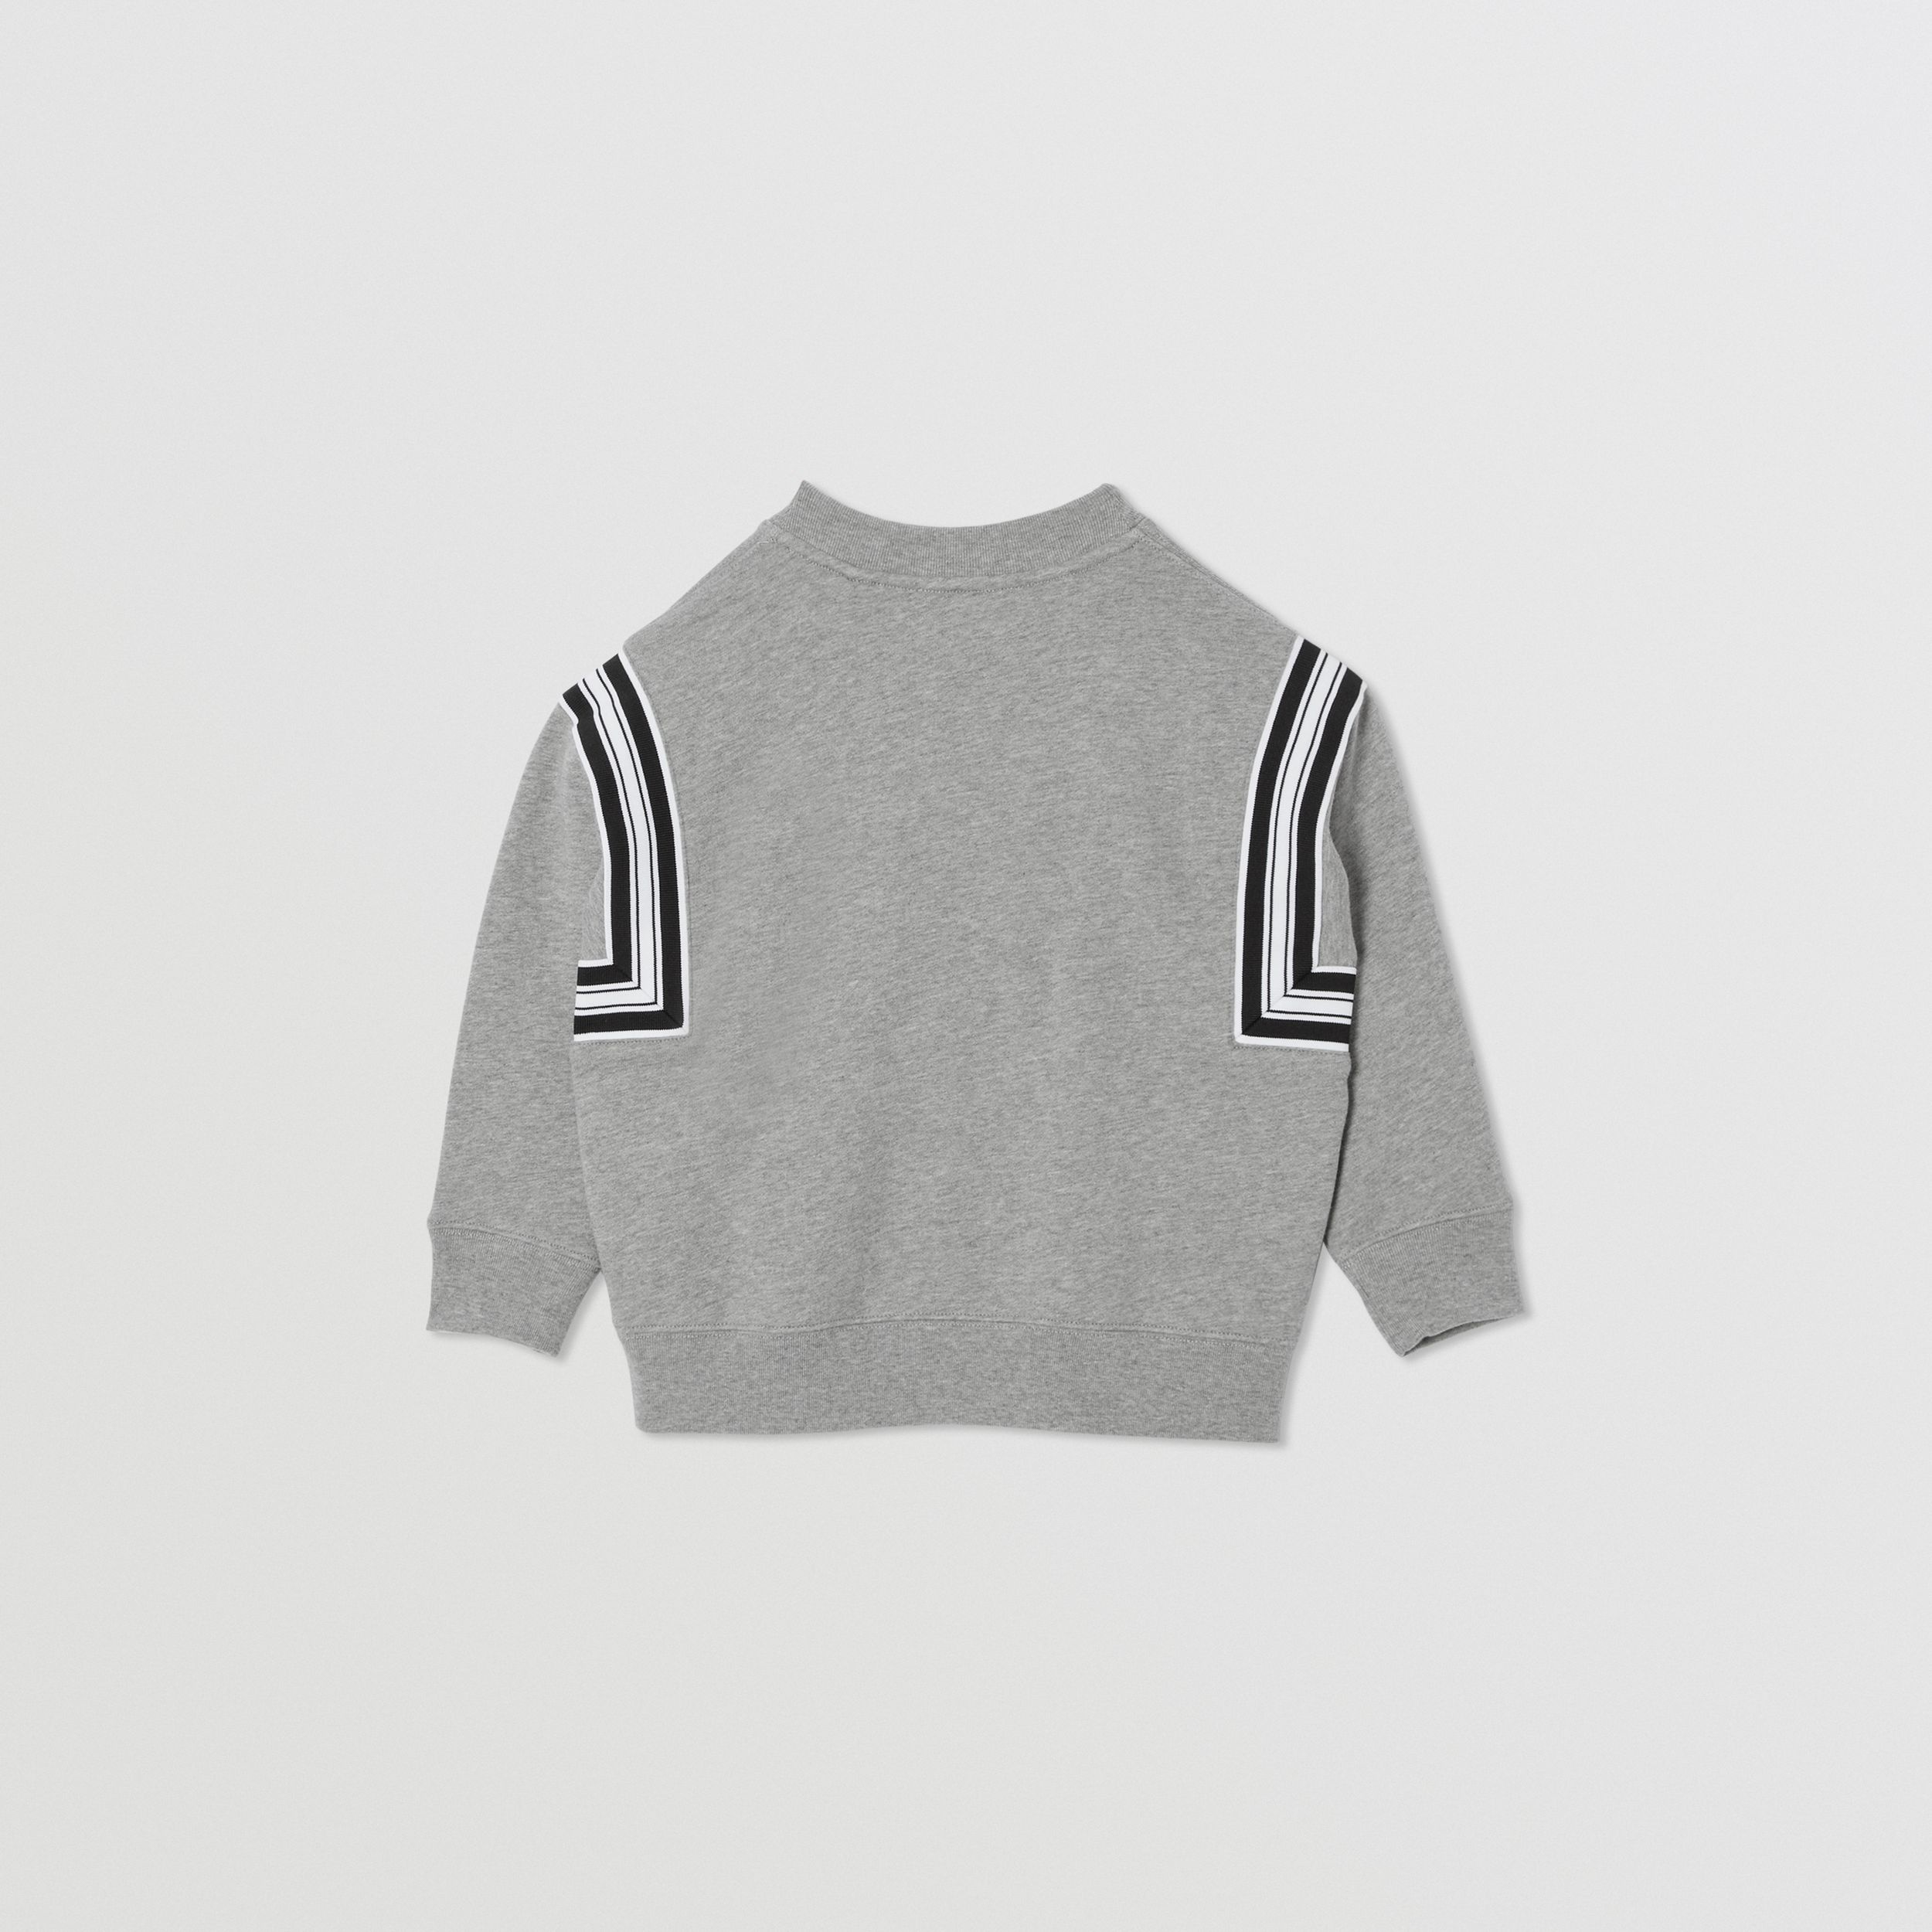 Coordinates Print Cotton Sweatshirt in Grey Melange | Burberry - 4